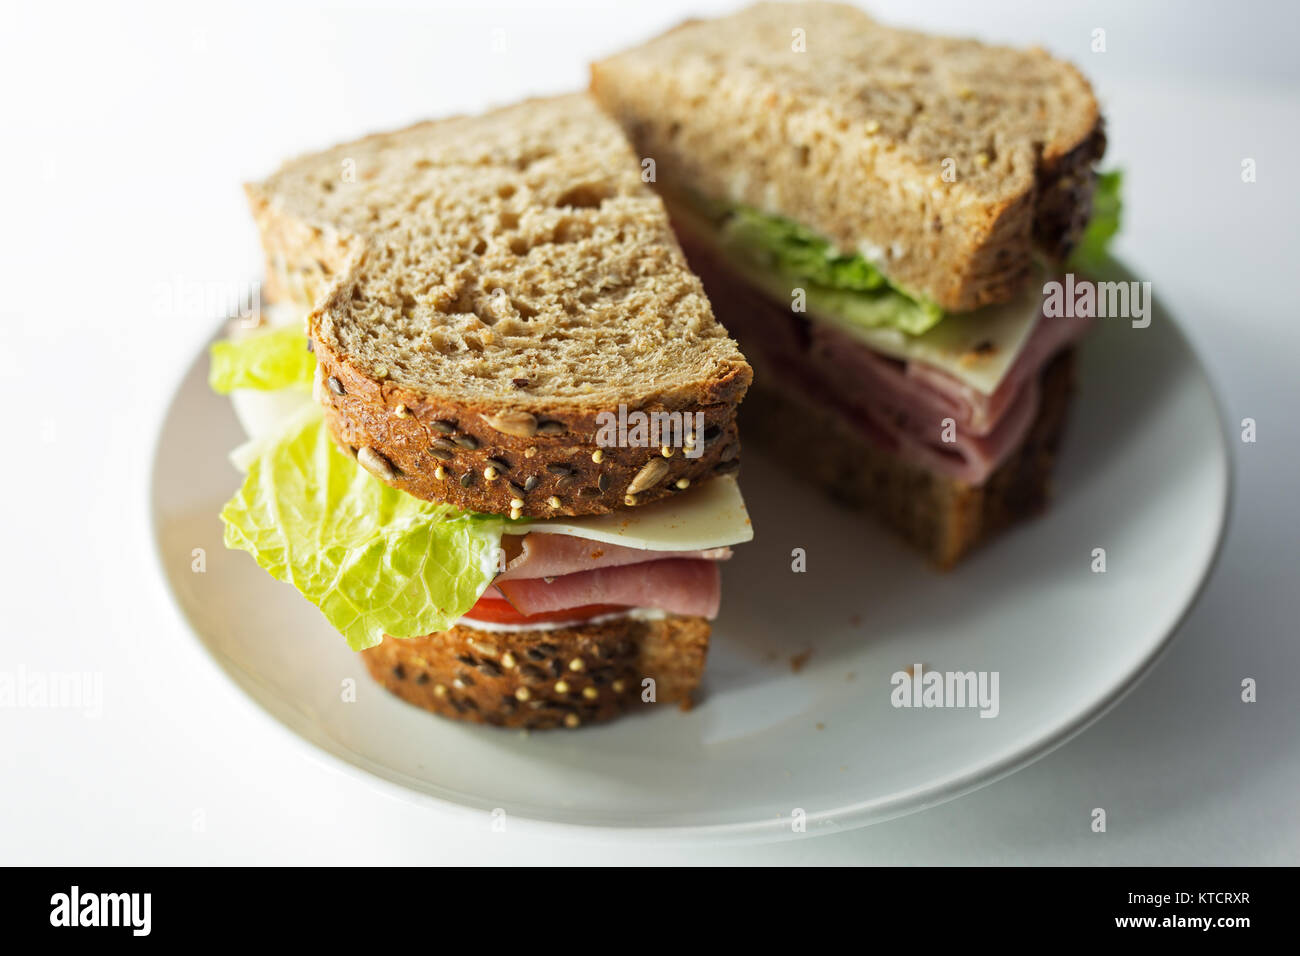 Ham sandwich made with artisan bread on a white plate. Copy space. White background. - Stock Image